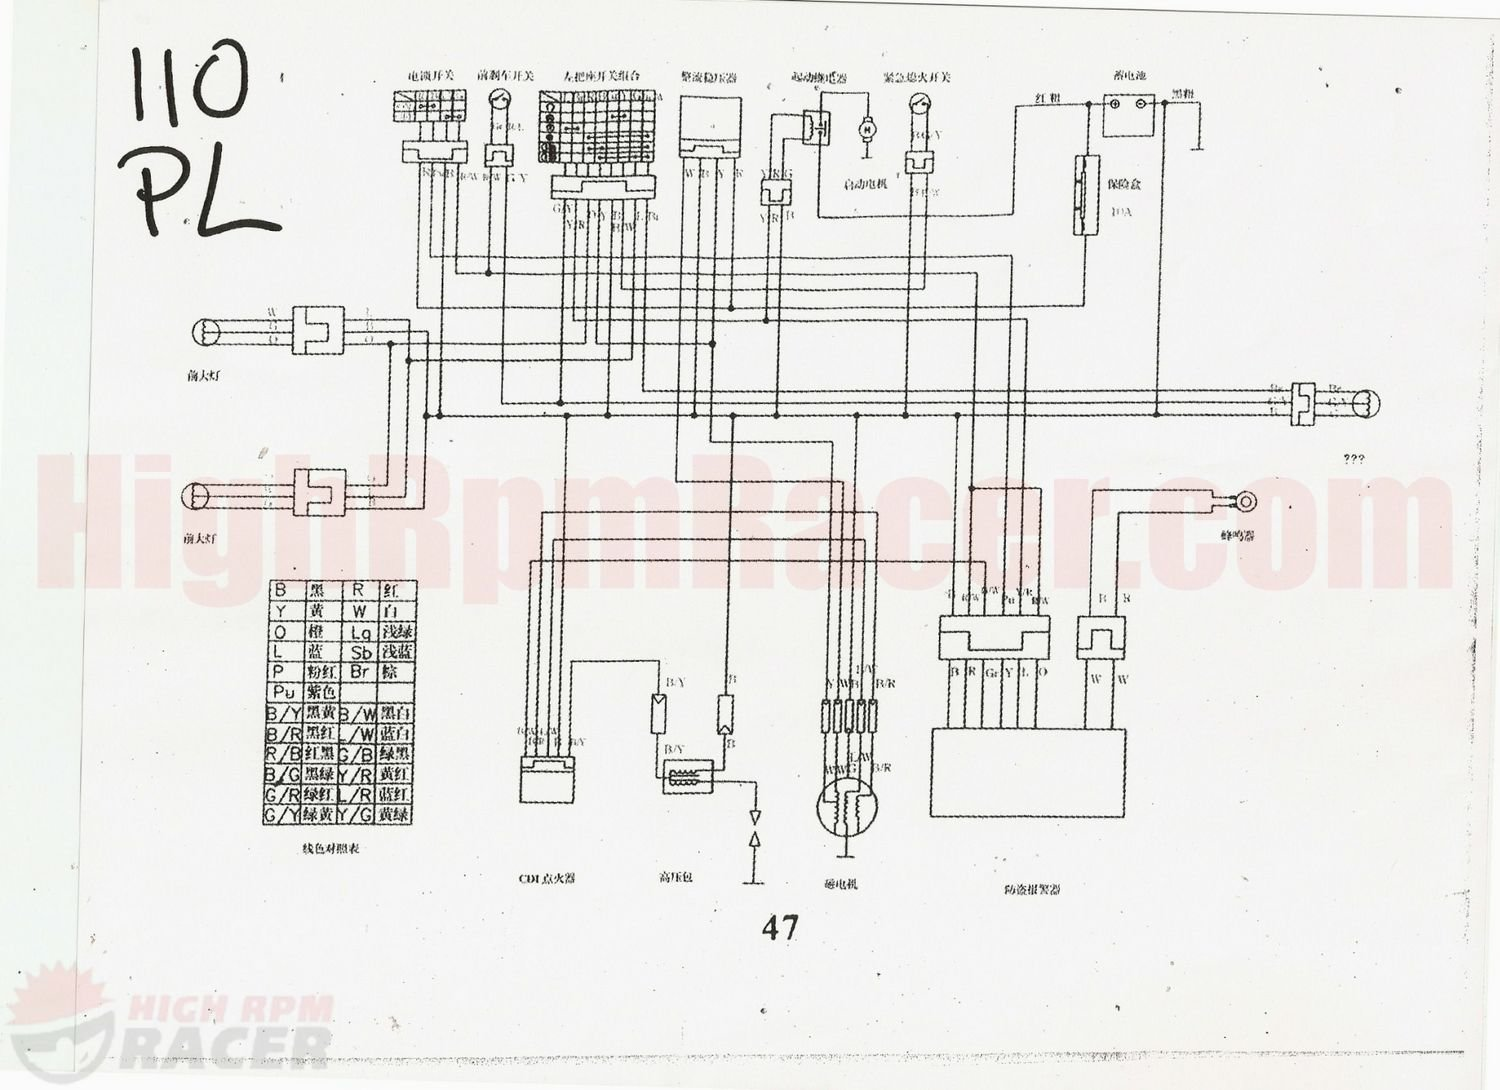 panther110pl_wd panther atv 110pl wiring diagram $0 00 loncin engine wiring diagrams for atv at mifinder.co